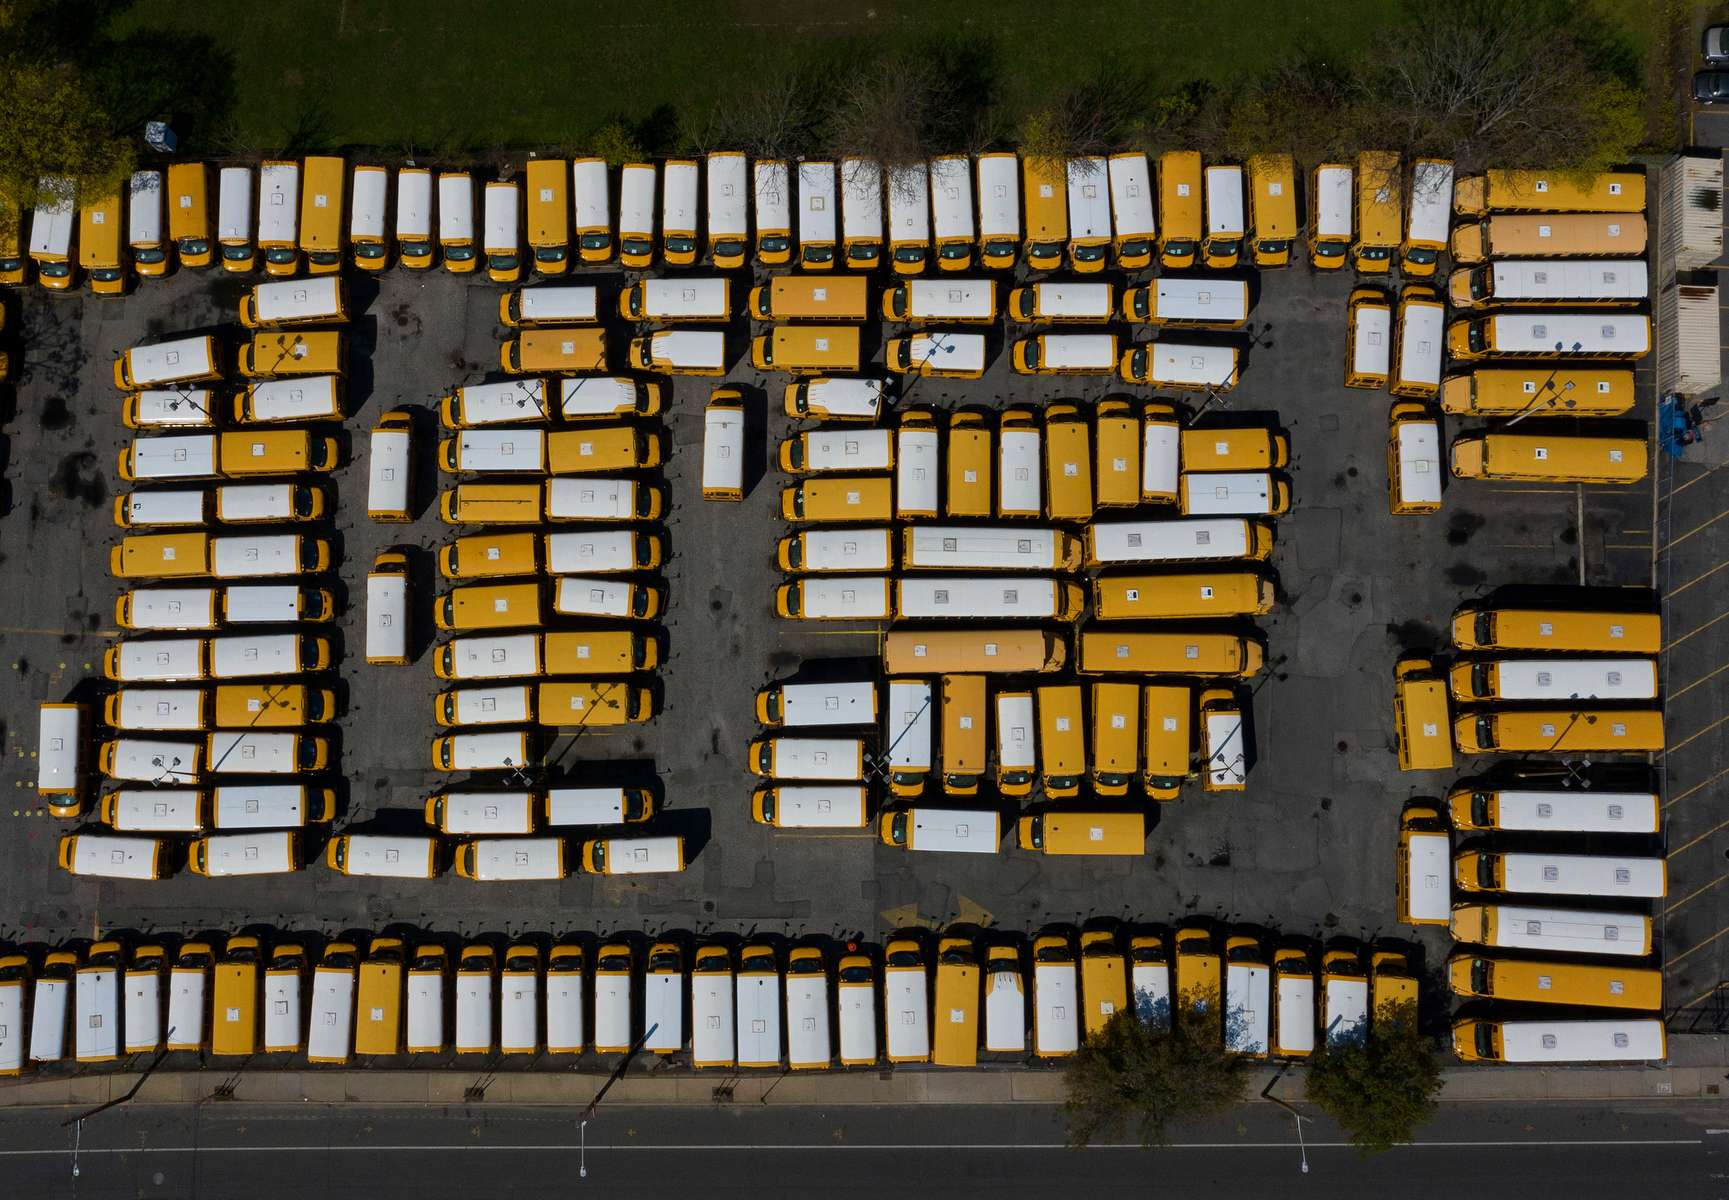 n aerial view of parked school buses in a parking lot bus depot on April 25, 2020 in Freeport, New York. Freeport schools have been closed since March 16th because of the coronavirus pandemic.